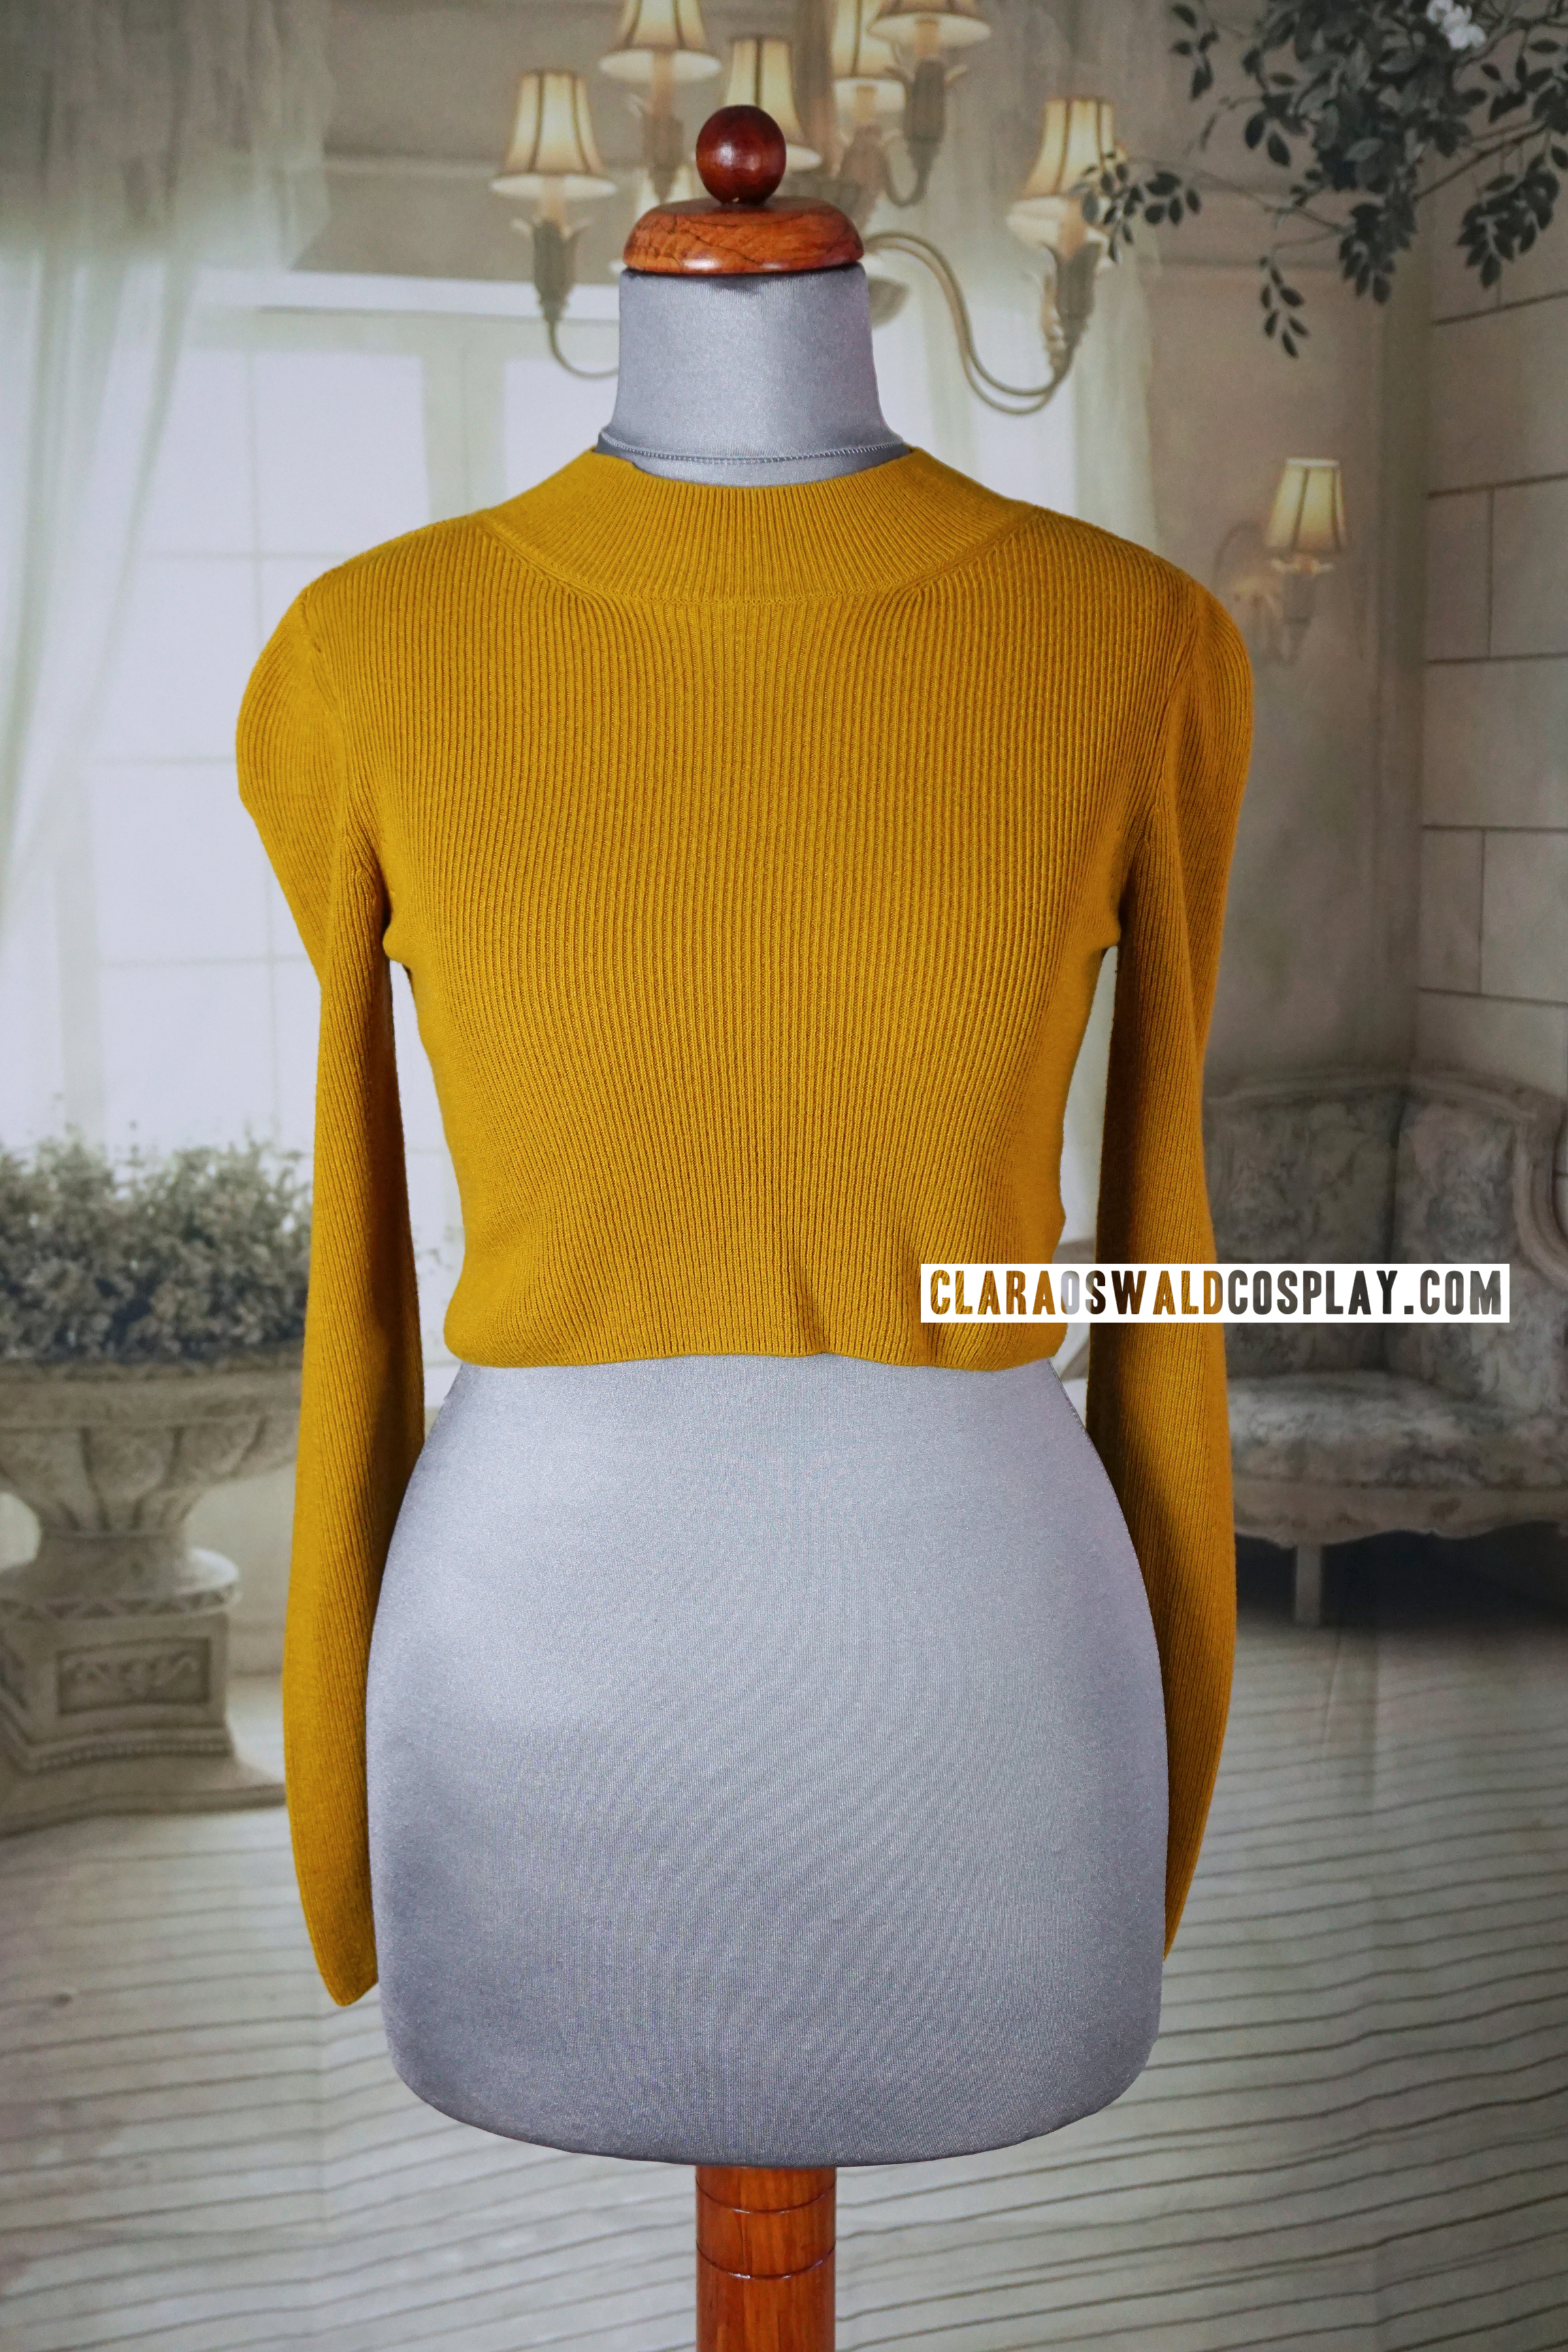 Clara Oswald's Topshop Mustard Crop Jumper that she wore in Under the Lake / Before the Flood